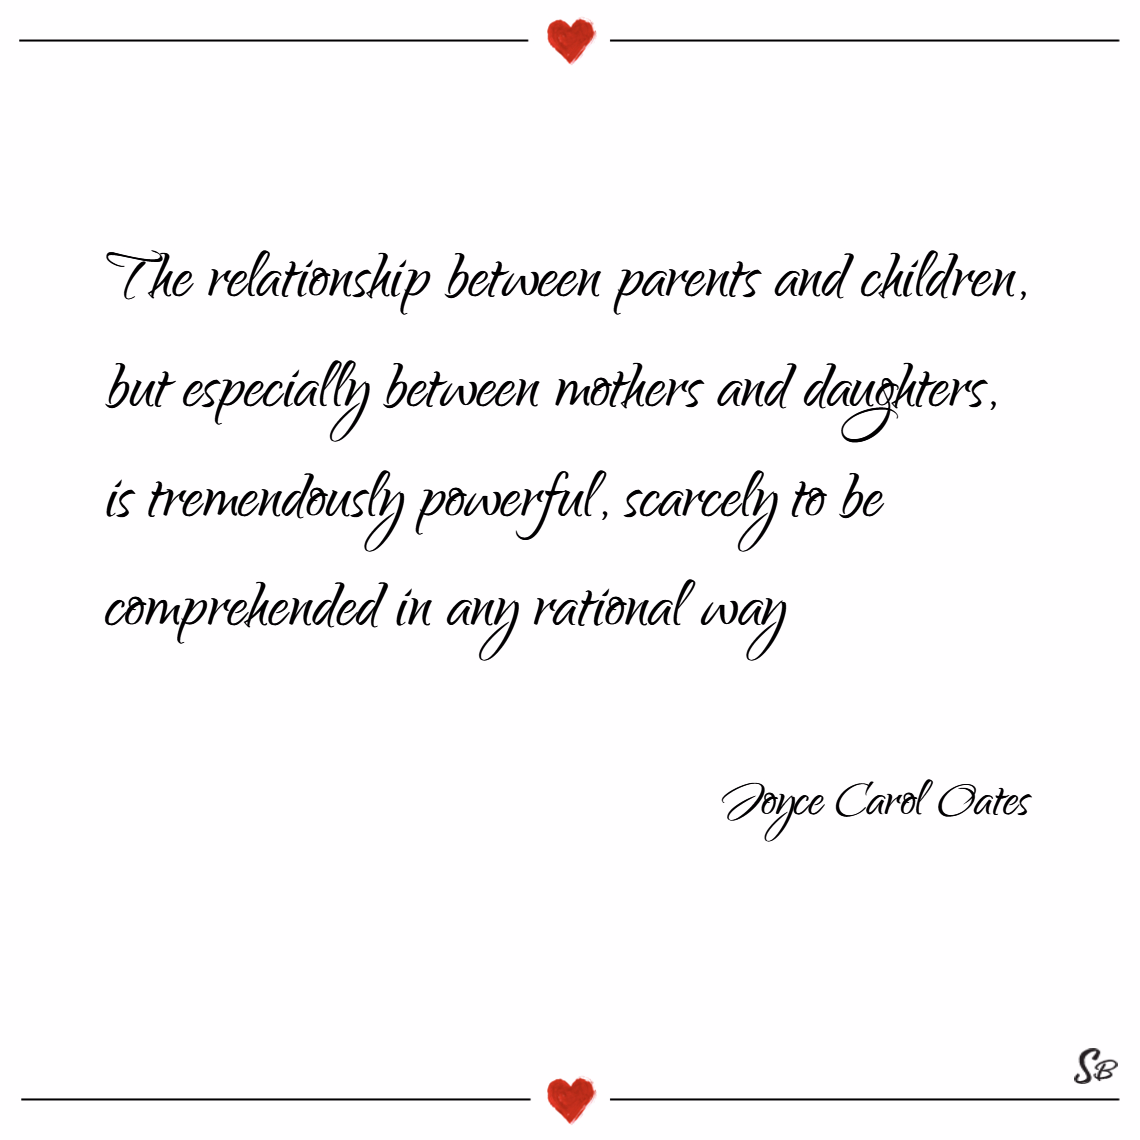 The relationship between parents and children, but especially between mothers and daughters, is tremendously powerful, scarcely to be comprehended in any rational way. – joyce carol oates